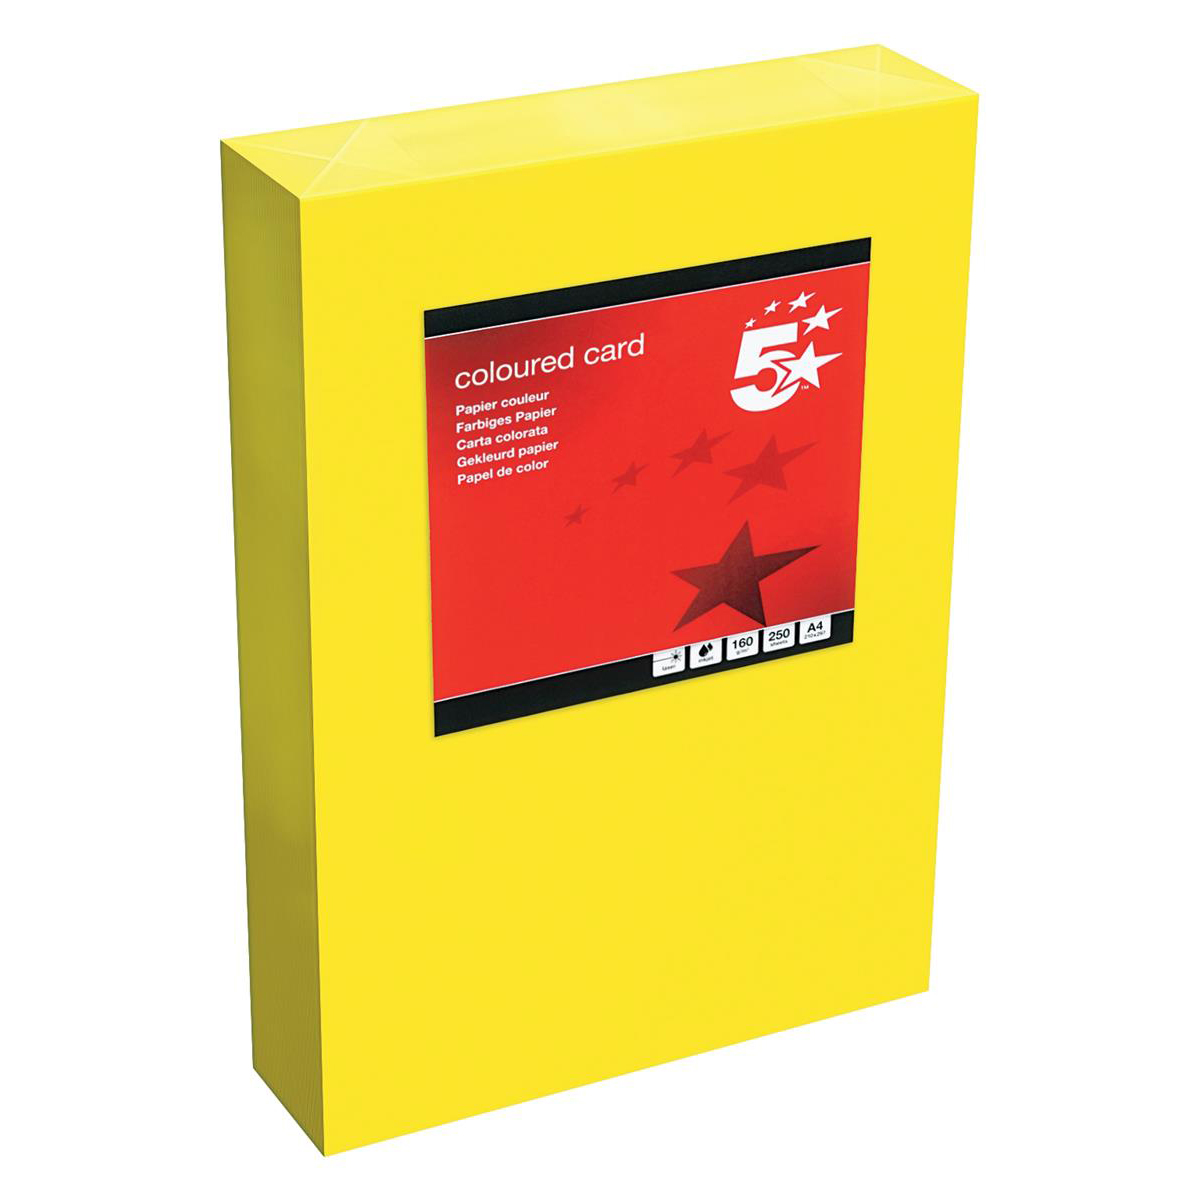 Card (160g+) 5 Star Office Coloured Card Tinted 160gsm A4 Deep Yellow Pack 250